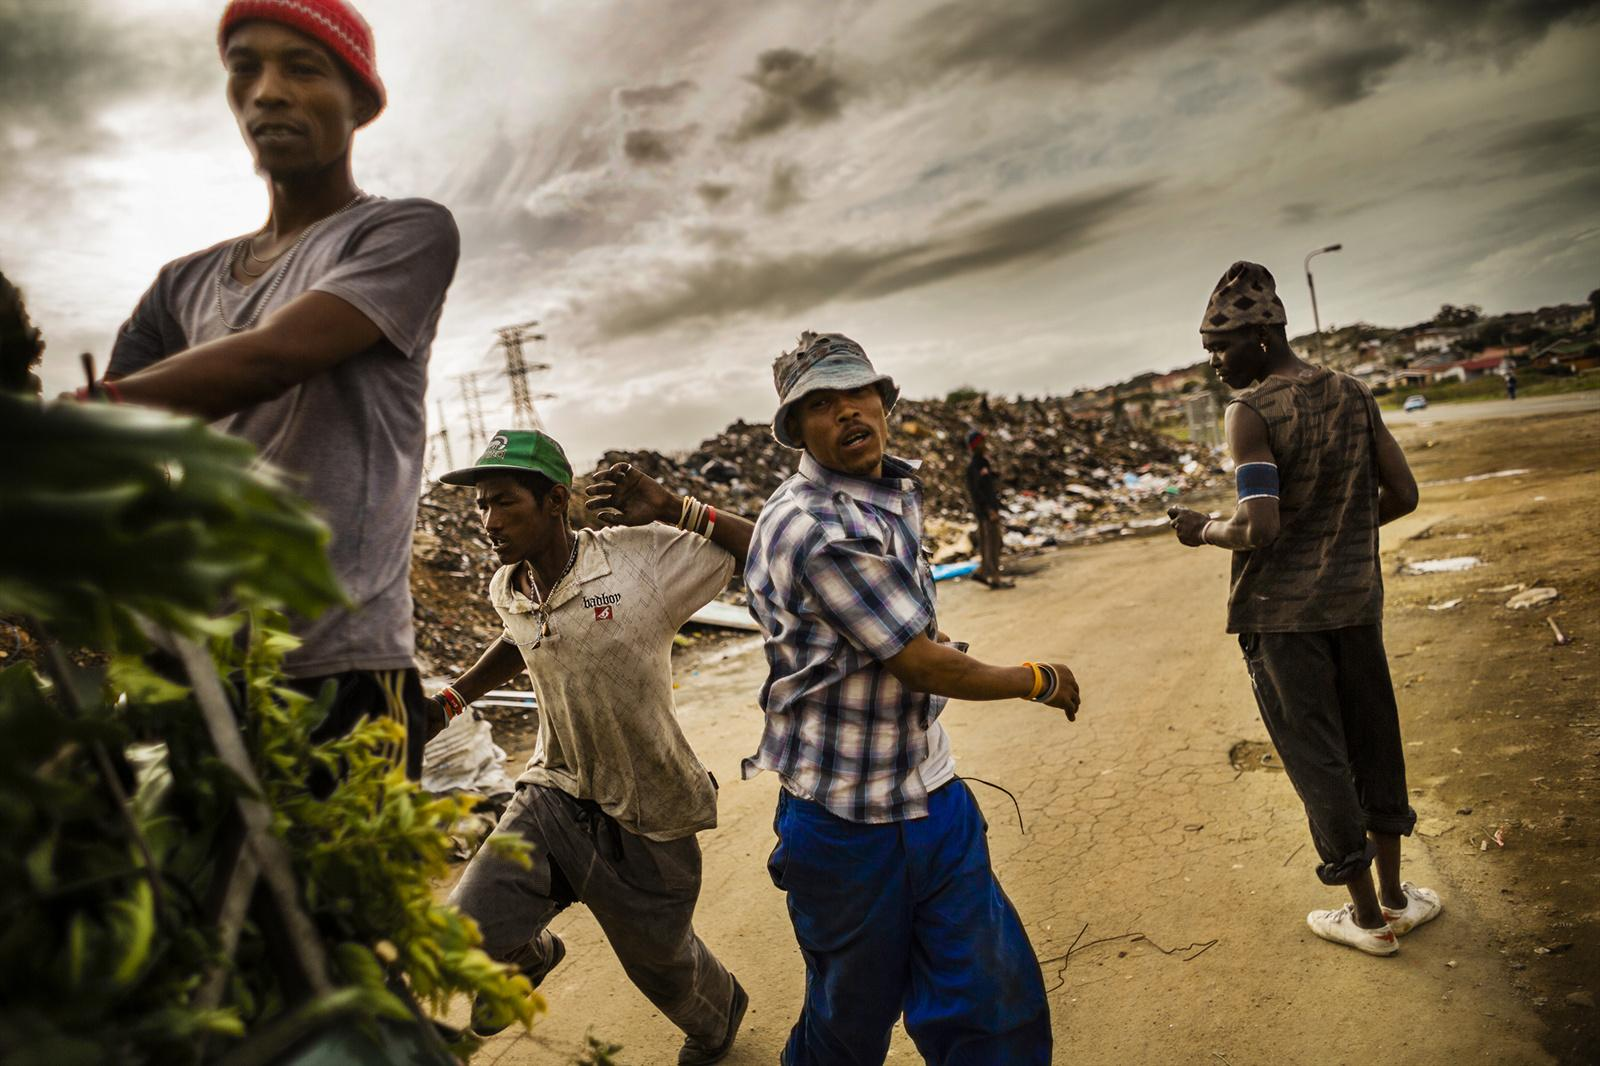 PORT ELIZABETH, SOUTH AFRICA - MARCH 06, 2015: Residents of a small community located next to a dumpsite run after a car to jump on its back March 06, 2014 in Port Elizabeth, South Africa. They make tips by helping people unload their garbage. Most of the people that stay here used to be associated with gangs and are now escaping this dangerous lifestyle. Many of them come from Helenvale, an area that is now home to approximately 21 gangs, hence nicknamed 'Katanga', after the war-stricken province of the Democratic Republic of Congo.